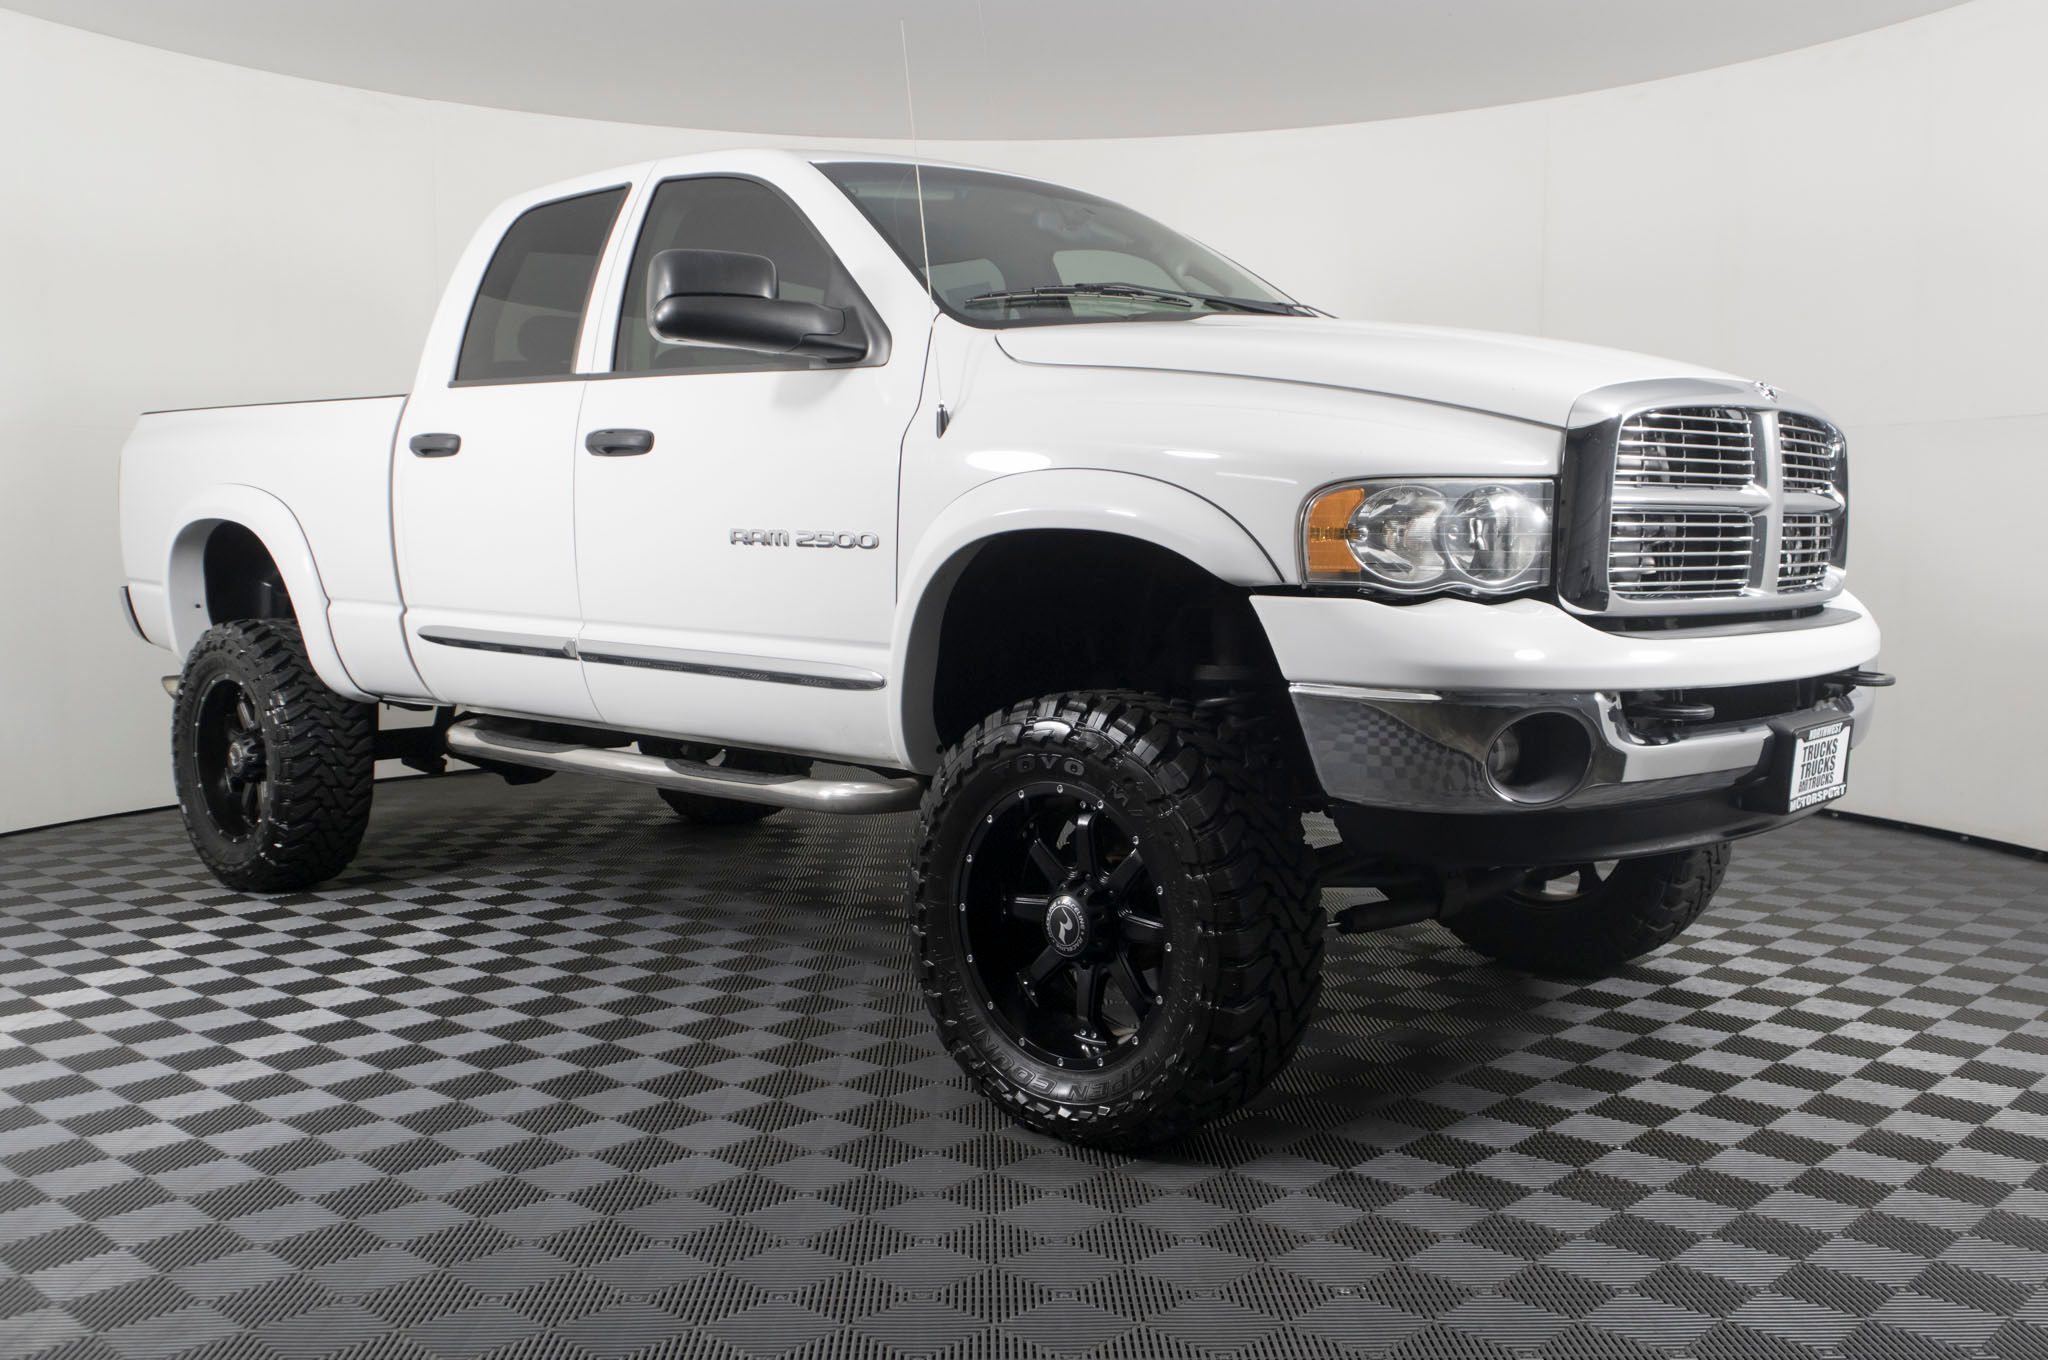 Used Lifted 2004 Dodge Ram 2500 4x4 Diesel Truck For Sale Northwest Motorsport